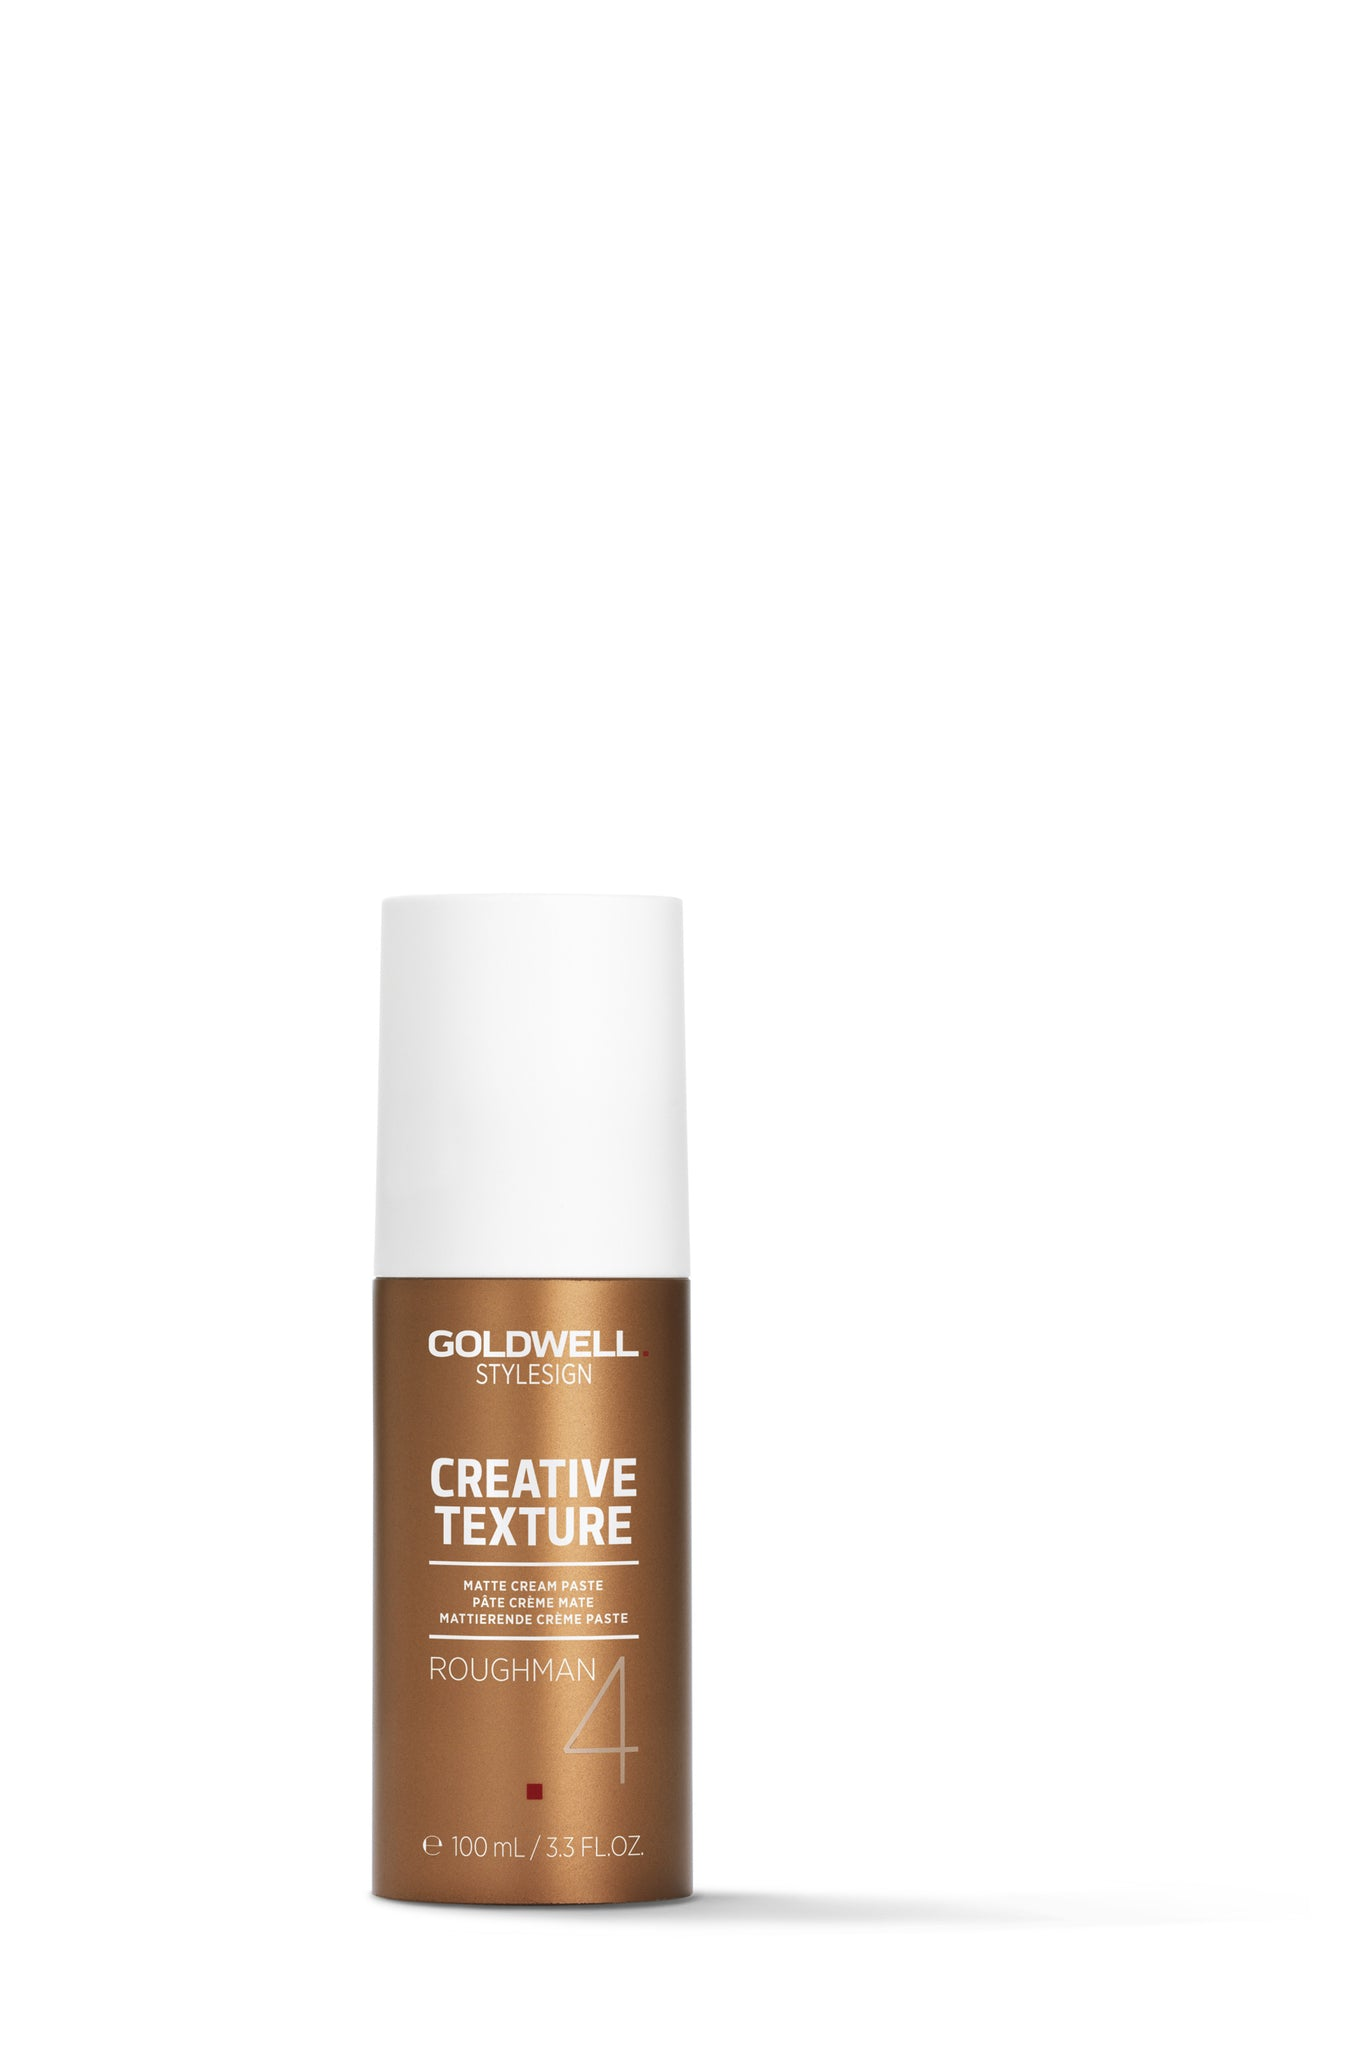 Creative Texture Roughman Matte Creme Paste  (100ml)